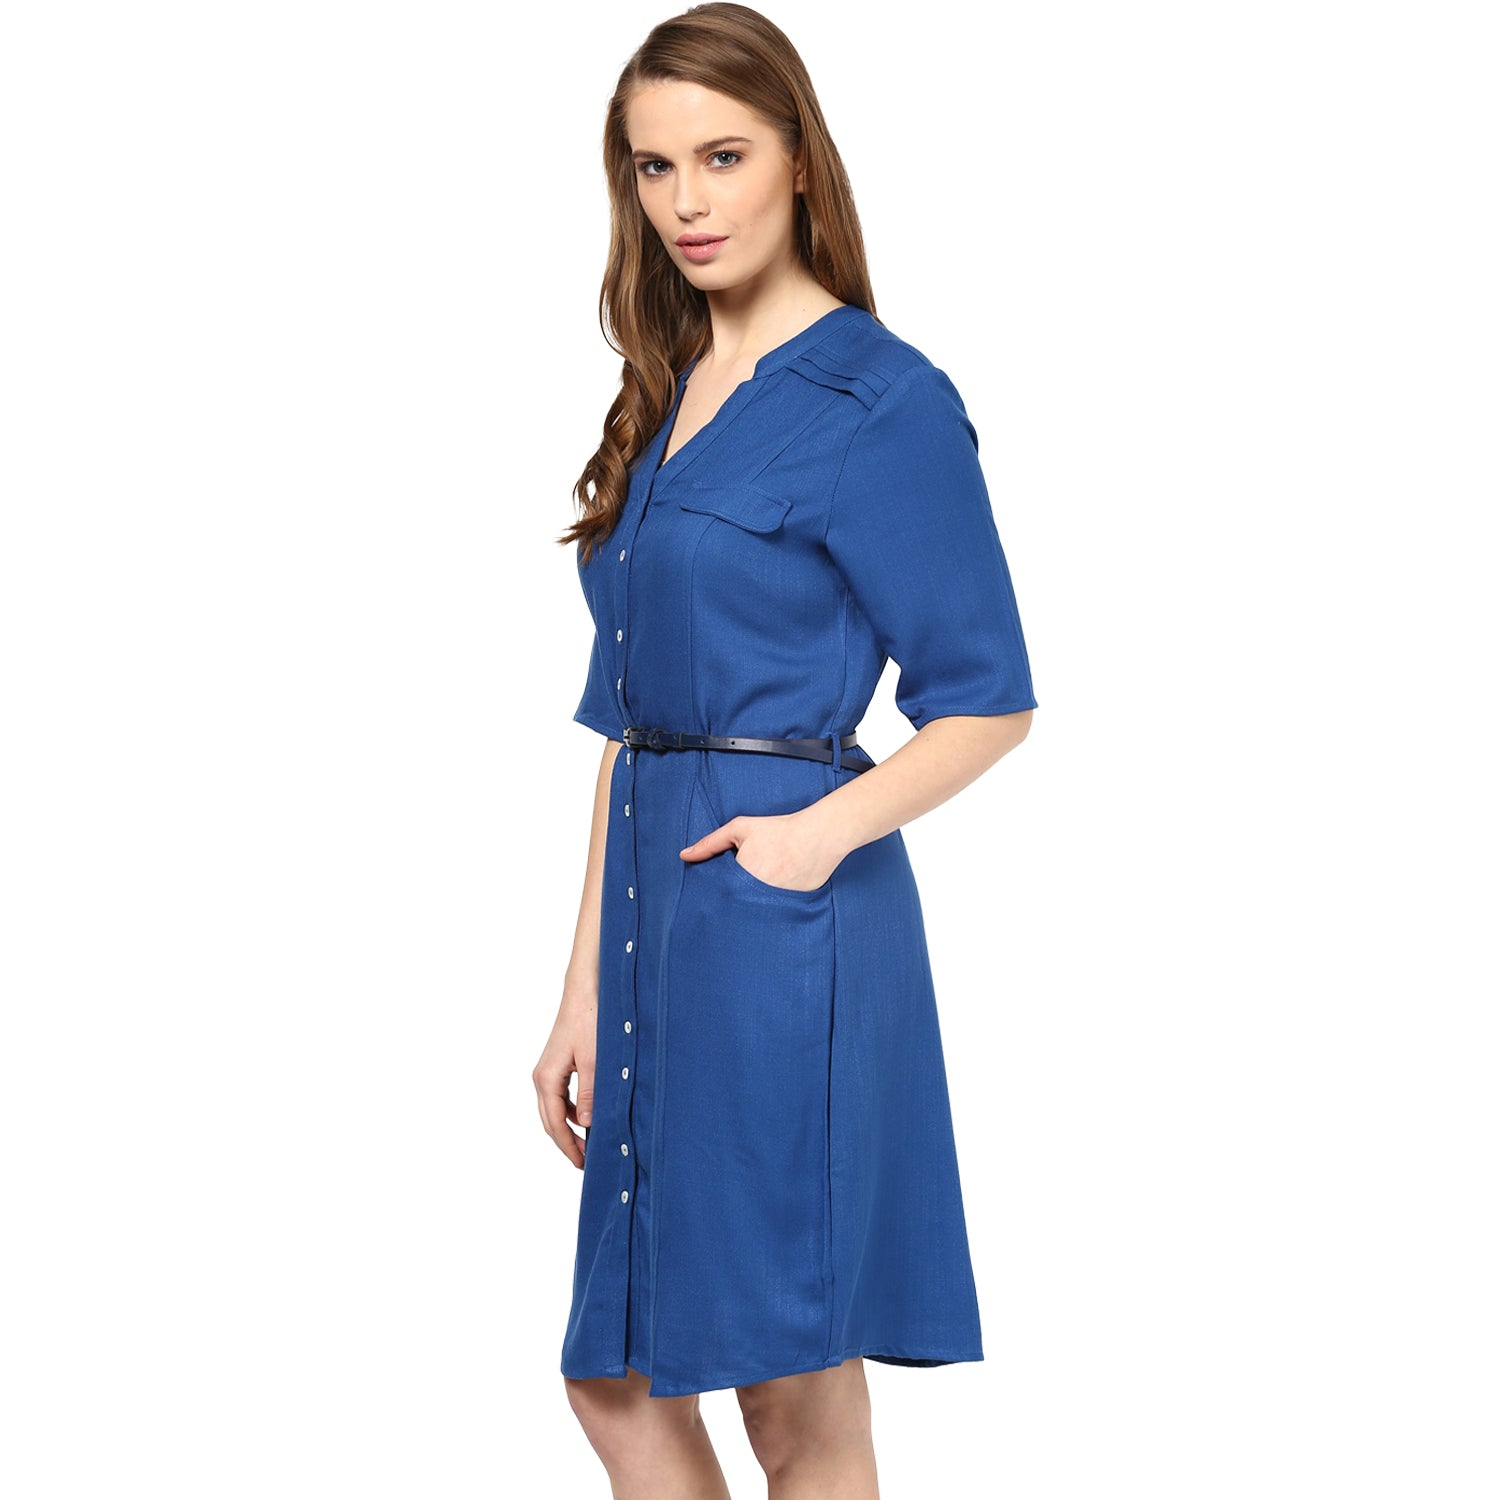 57ce8bf21a Solid Blue Color Dress